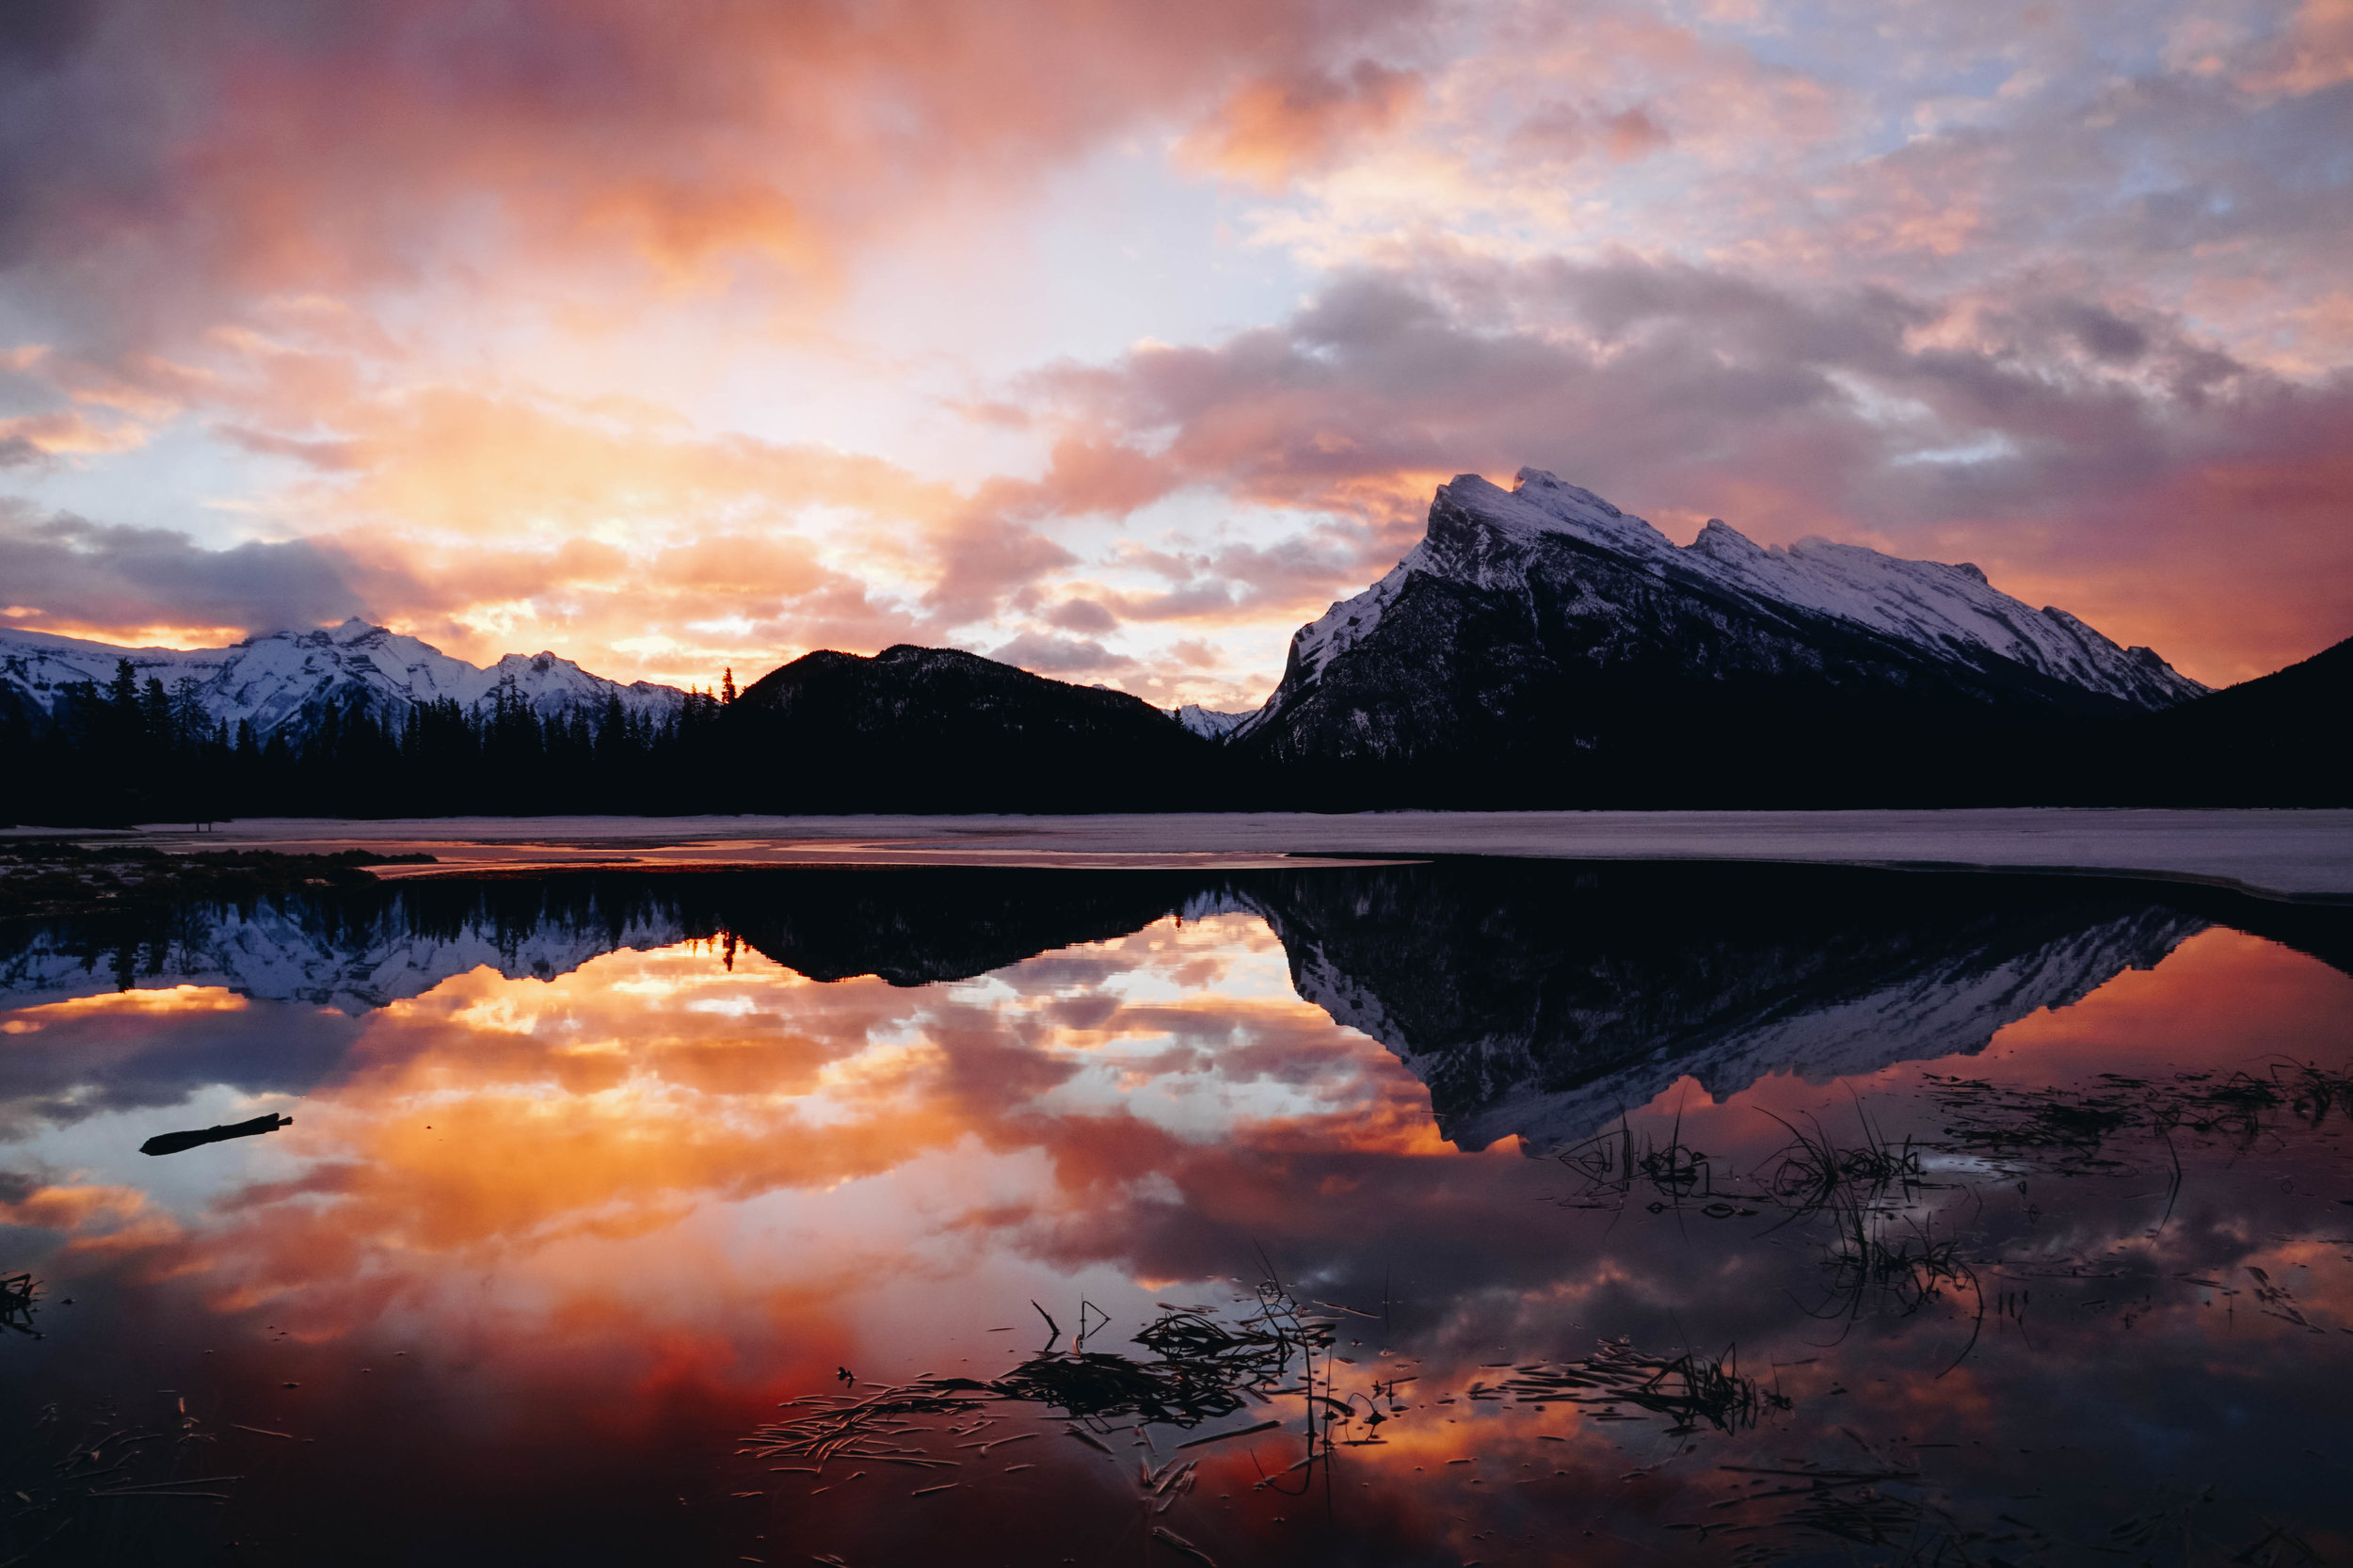 Sunset over Banff National Park